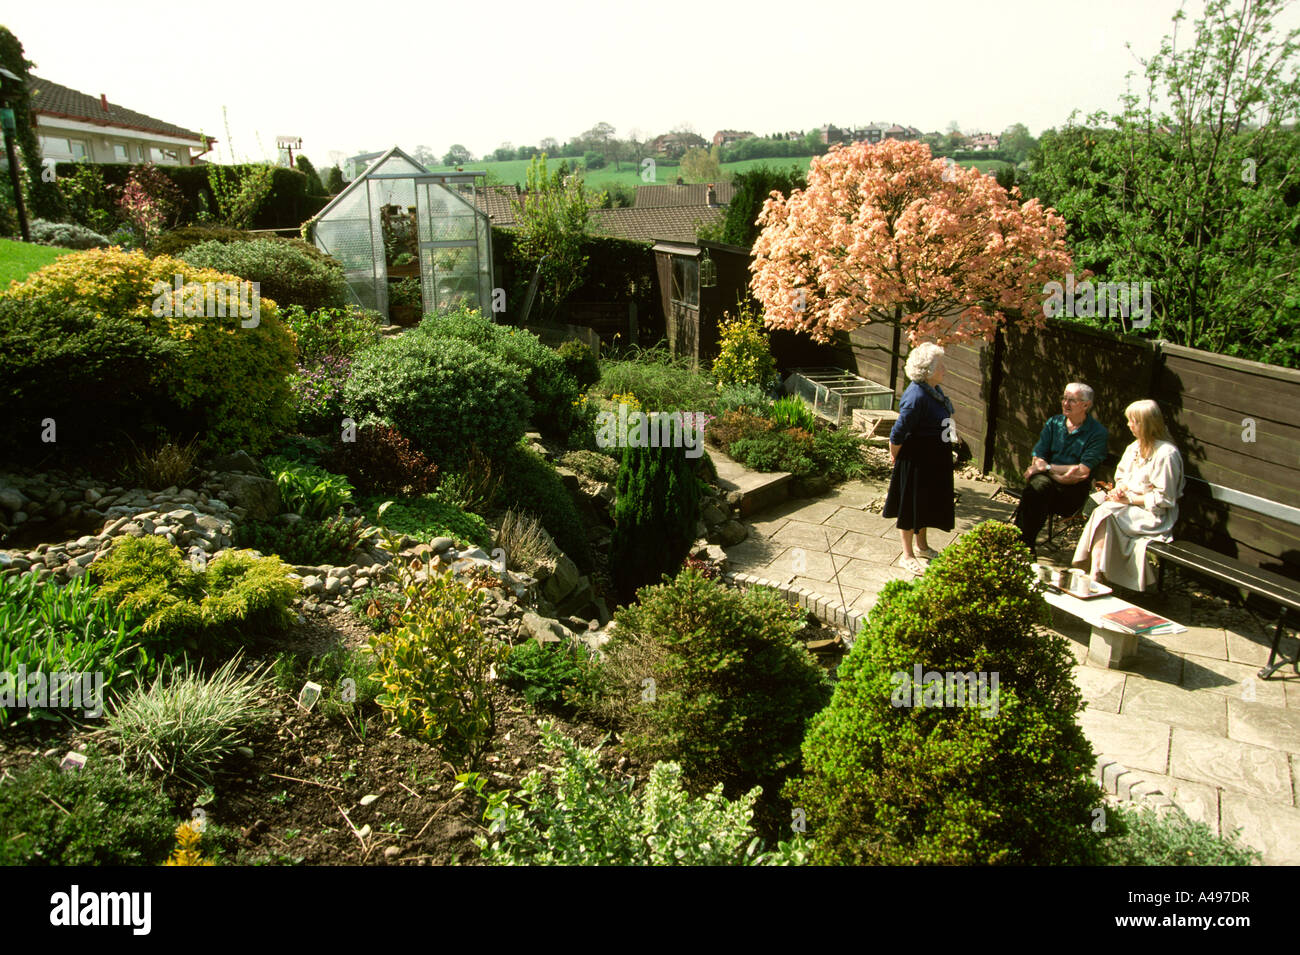 Gardens easy to maintain sloping garden stock photo for Easy gardens to maintain